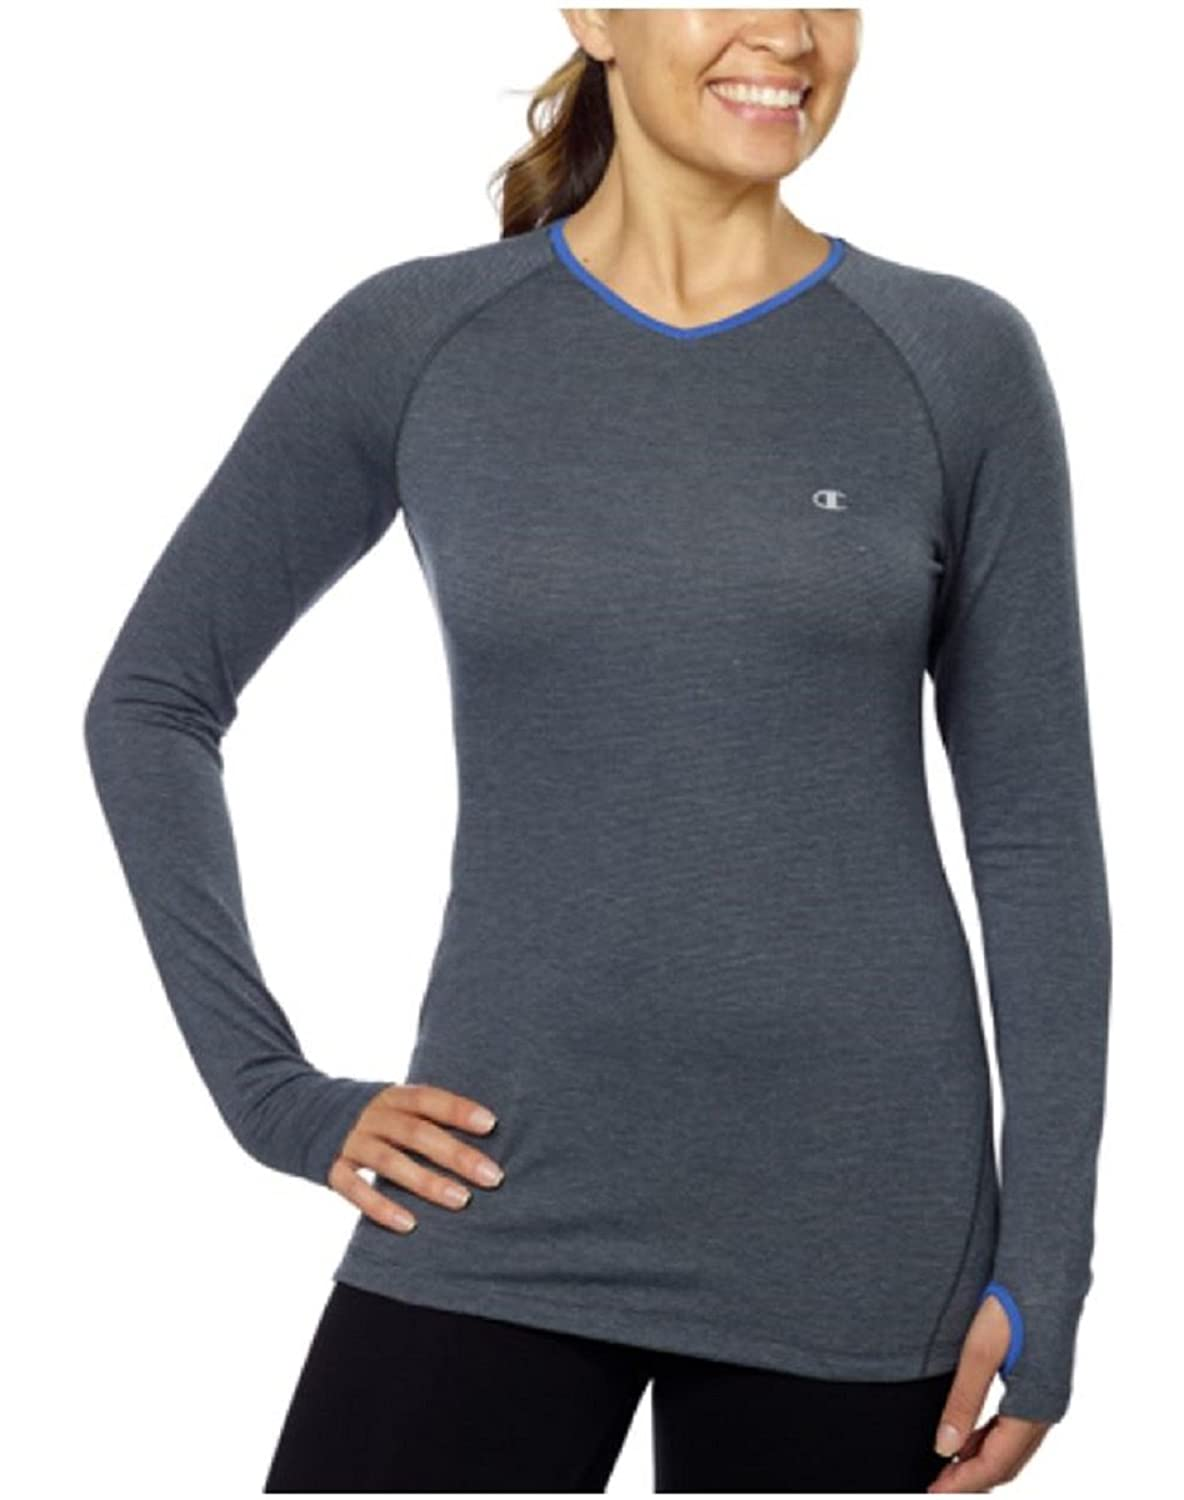 Womens Champion Active Yoga Athletic Long Sleeve Shirt (Large, Charcoal)